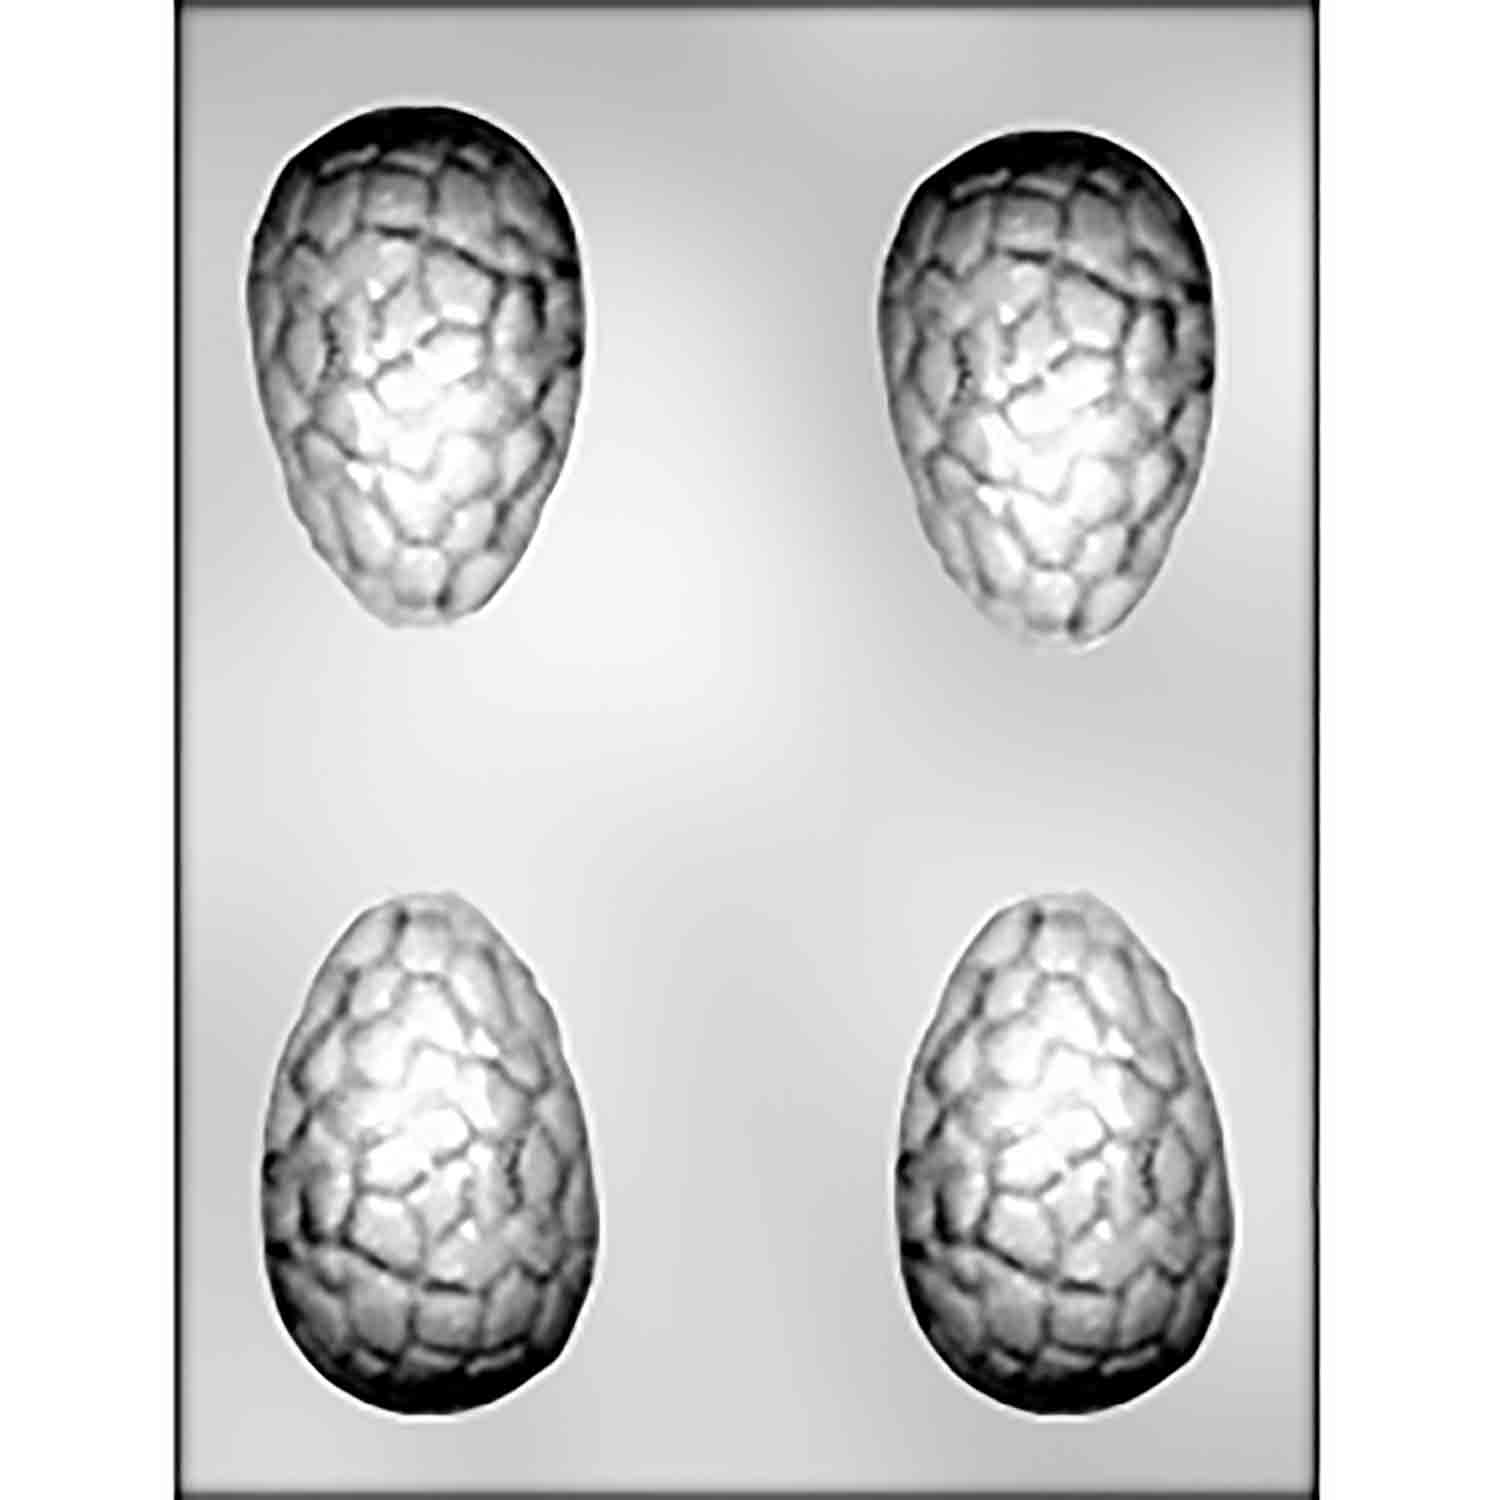 3D Large Cracked Egg Chocolate Candy Mold